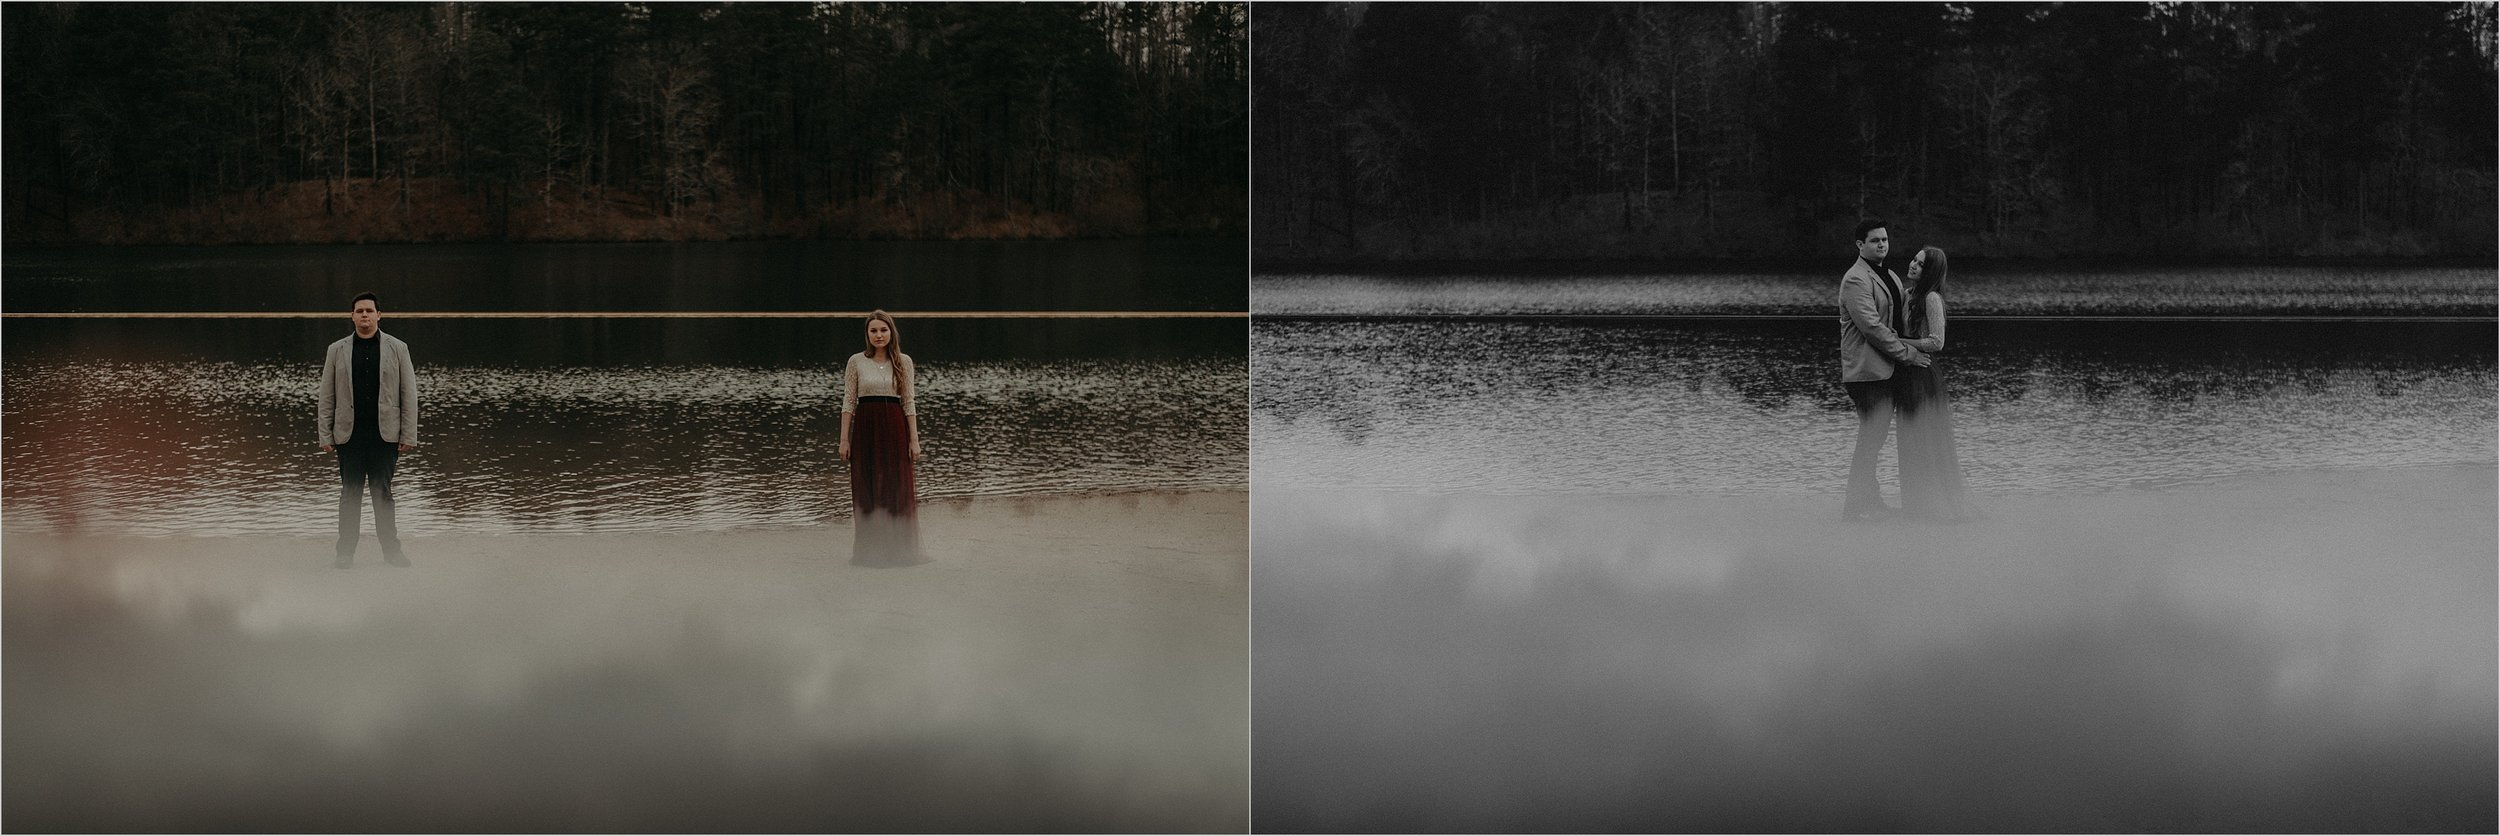 Engagement session at man-made beach on an overcast gloomy day in Oak Mountain State Park, Alabama